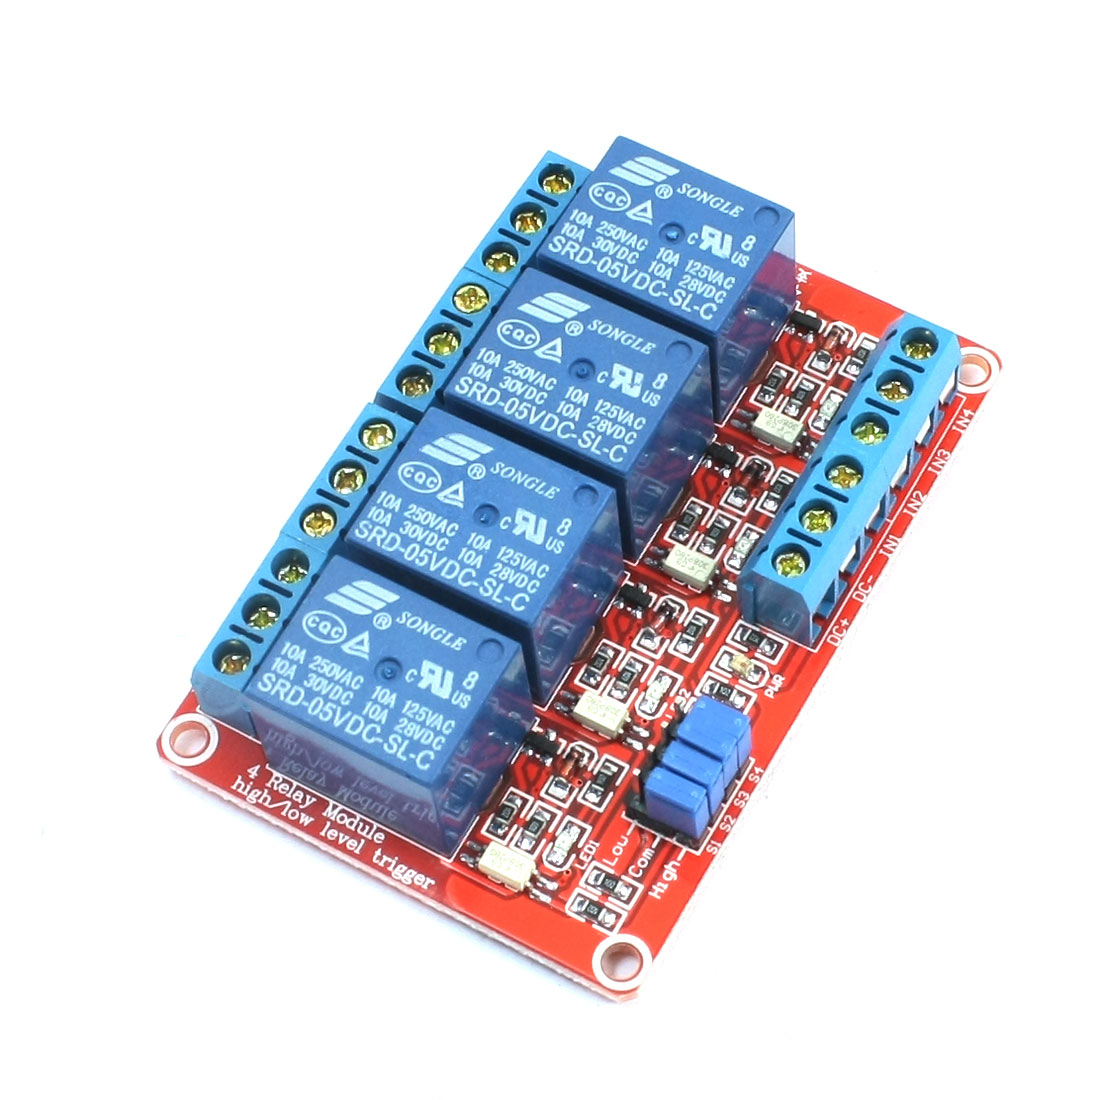 5V High/Low Level Trigger Opto-isolator 4-Channel Power Relay Module